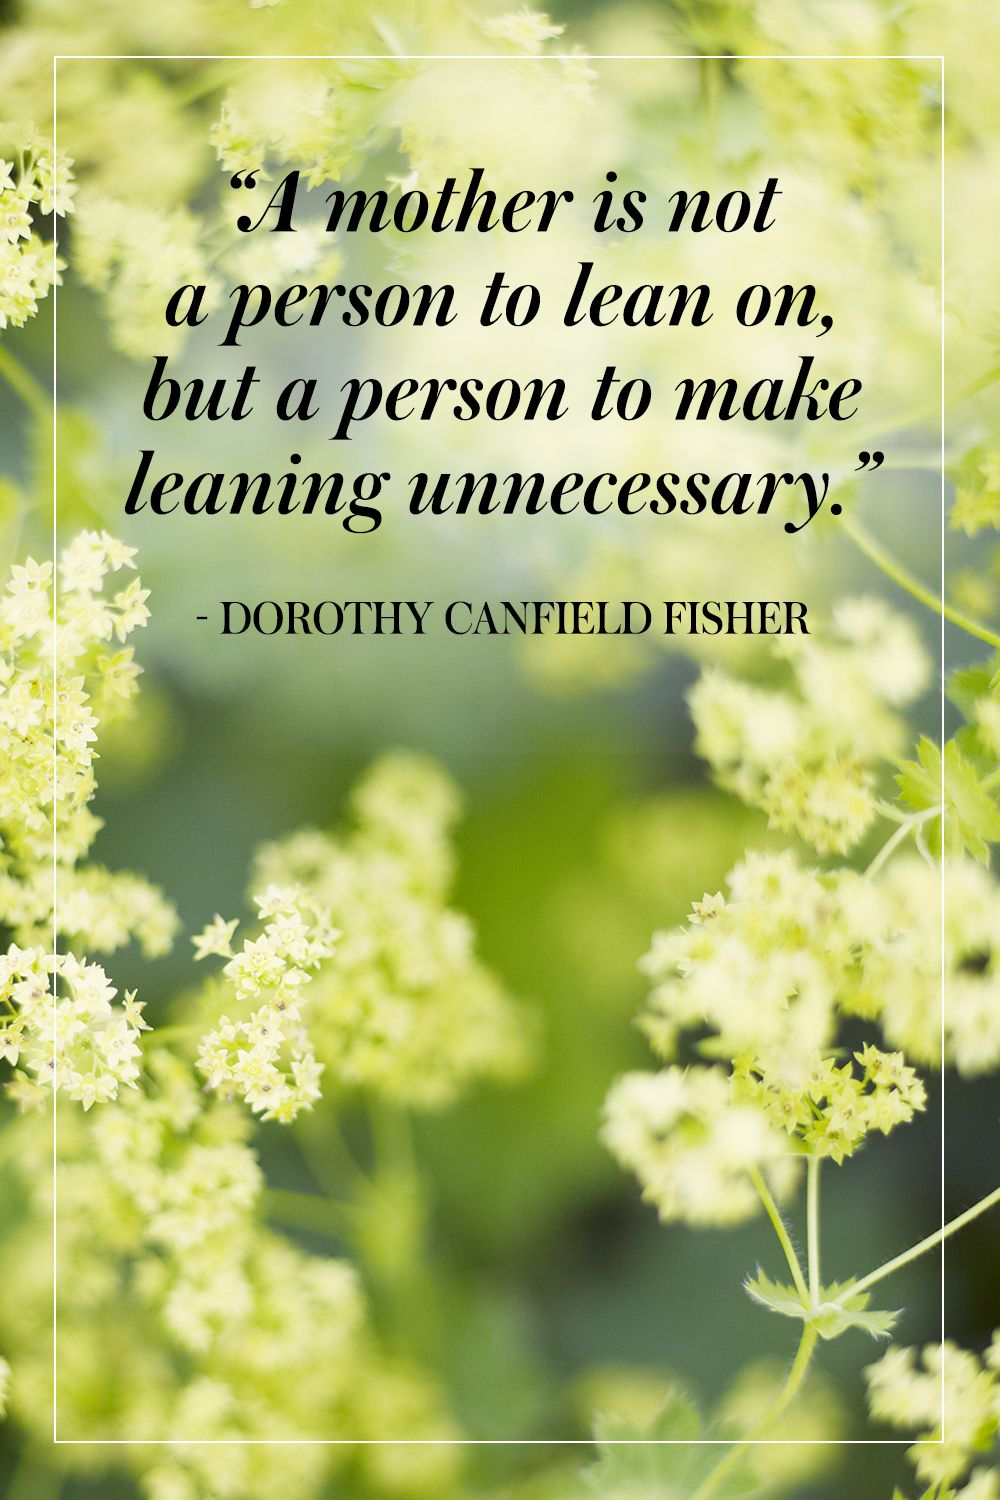 """""""A mother is not a person to lean on, but a person to make leaning unnecessary."""" - Dorothy Canfield Fisher"""